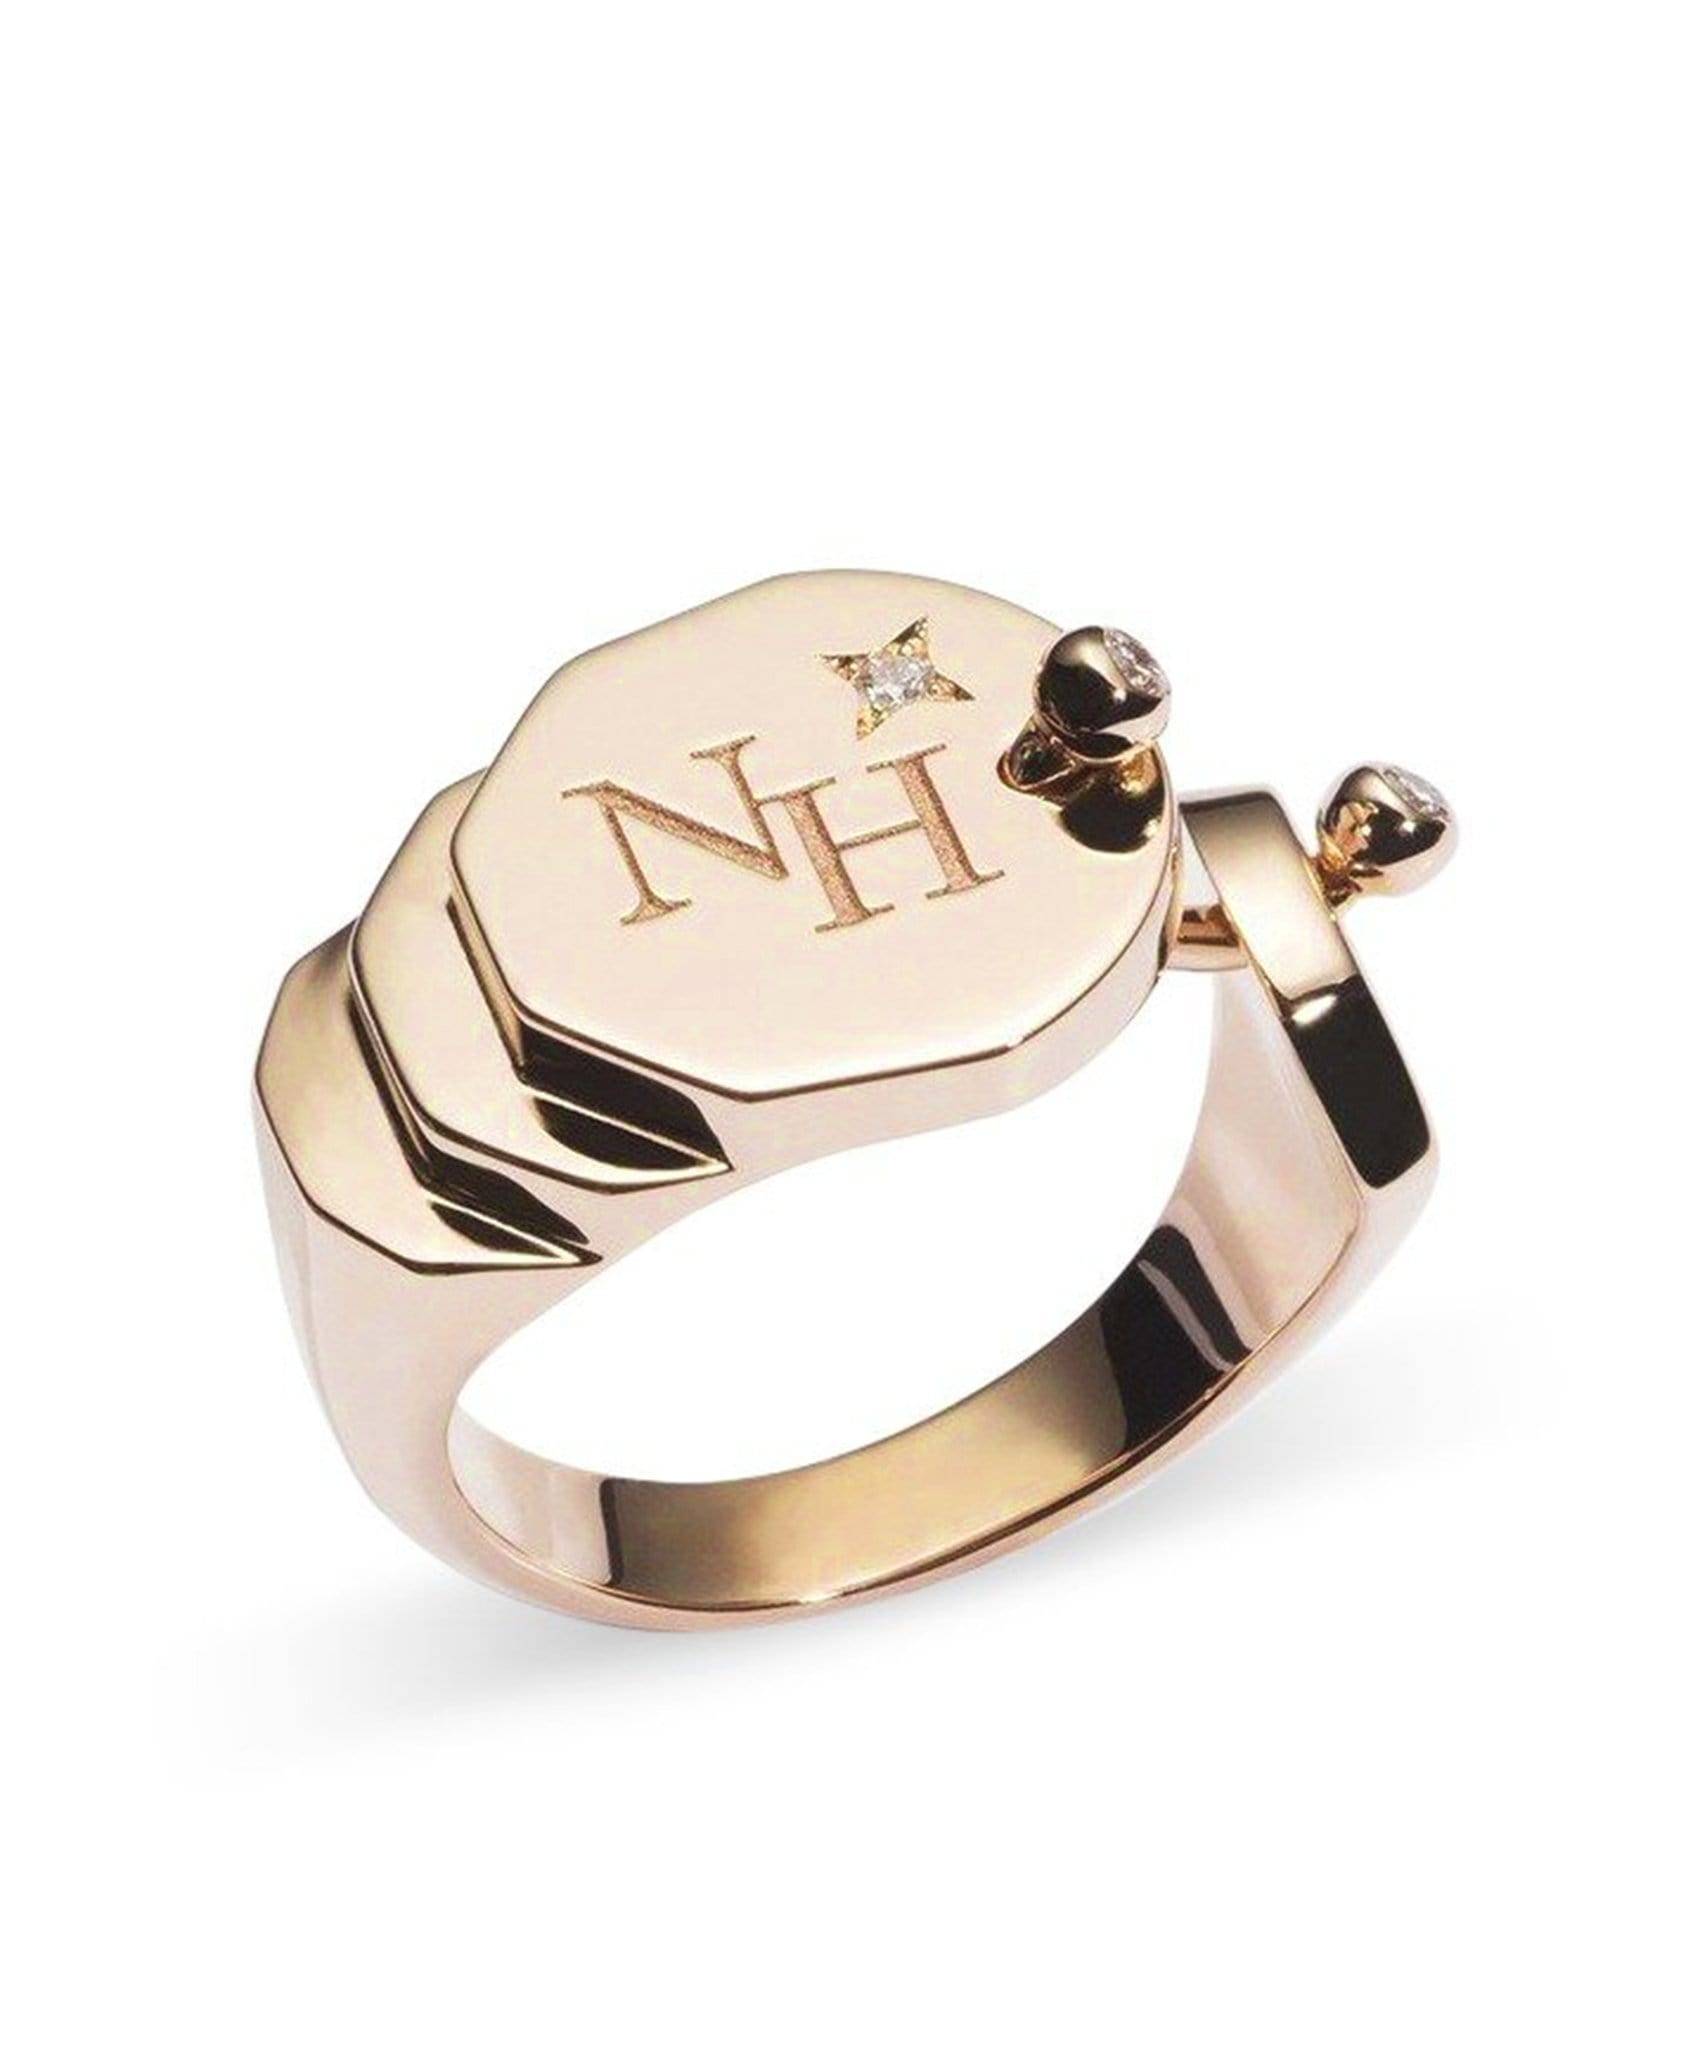 Gold Signet Ring: Discover Luxury Fine Jewelry | Nouvel Heritage || Yellow Gold